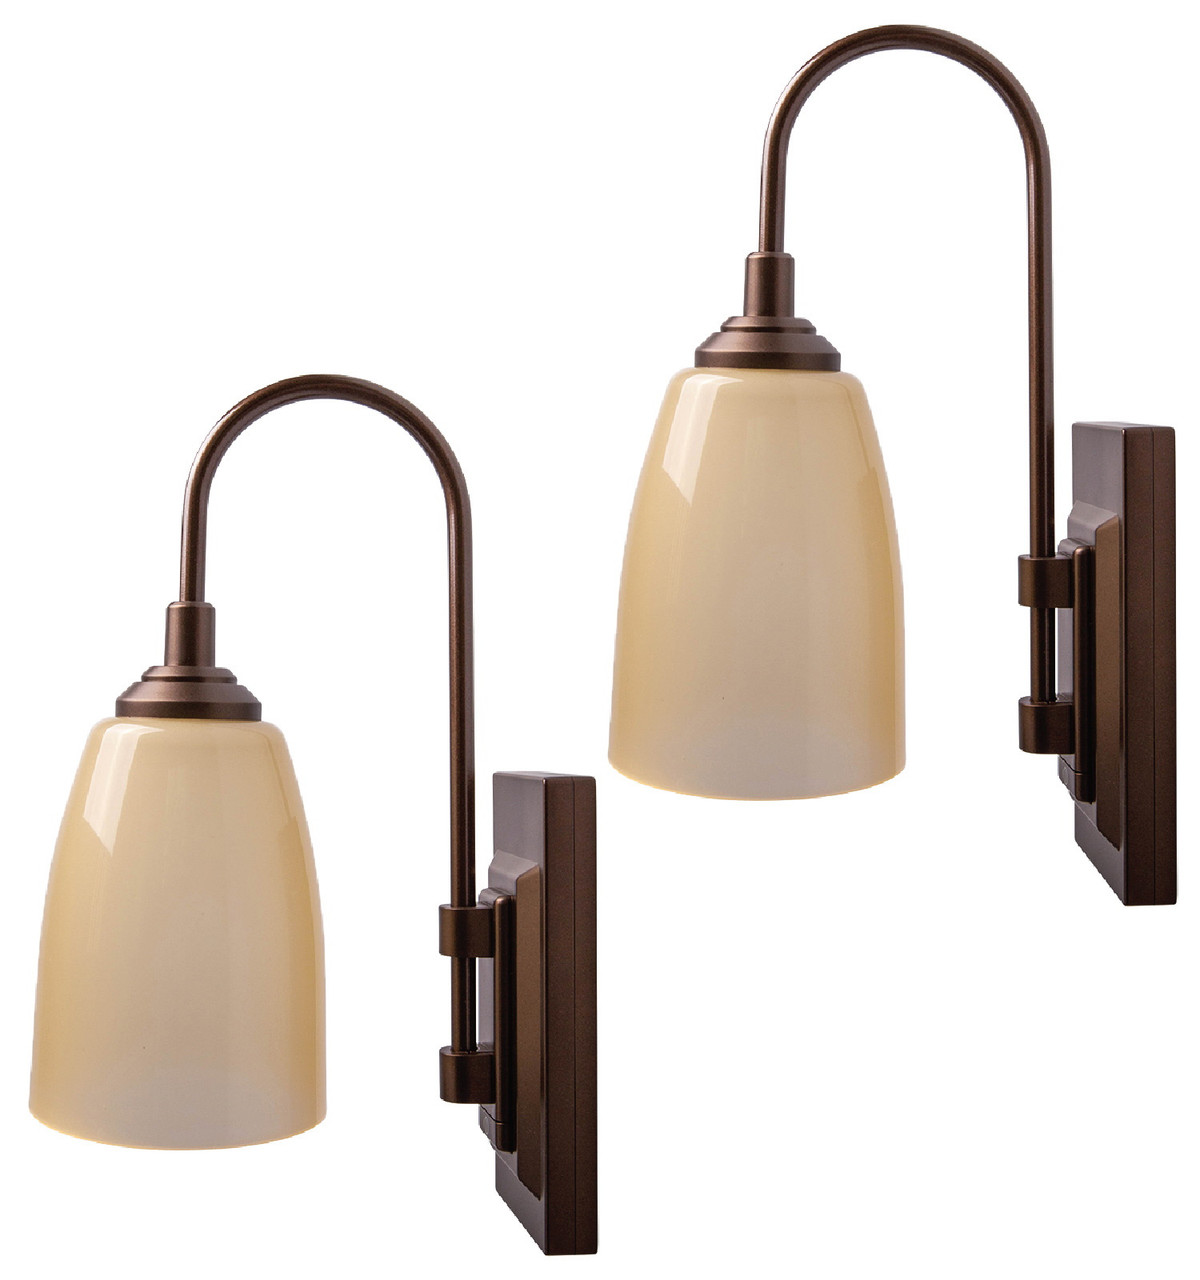 Image of: Westek Battery Operated Wall Sconces 2 Pack Easy Wireless Installation 4 Hour Auto Shut Off 2 Brightness Levels 100 Lumen Battery Operated Wall Light Firefly Buys